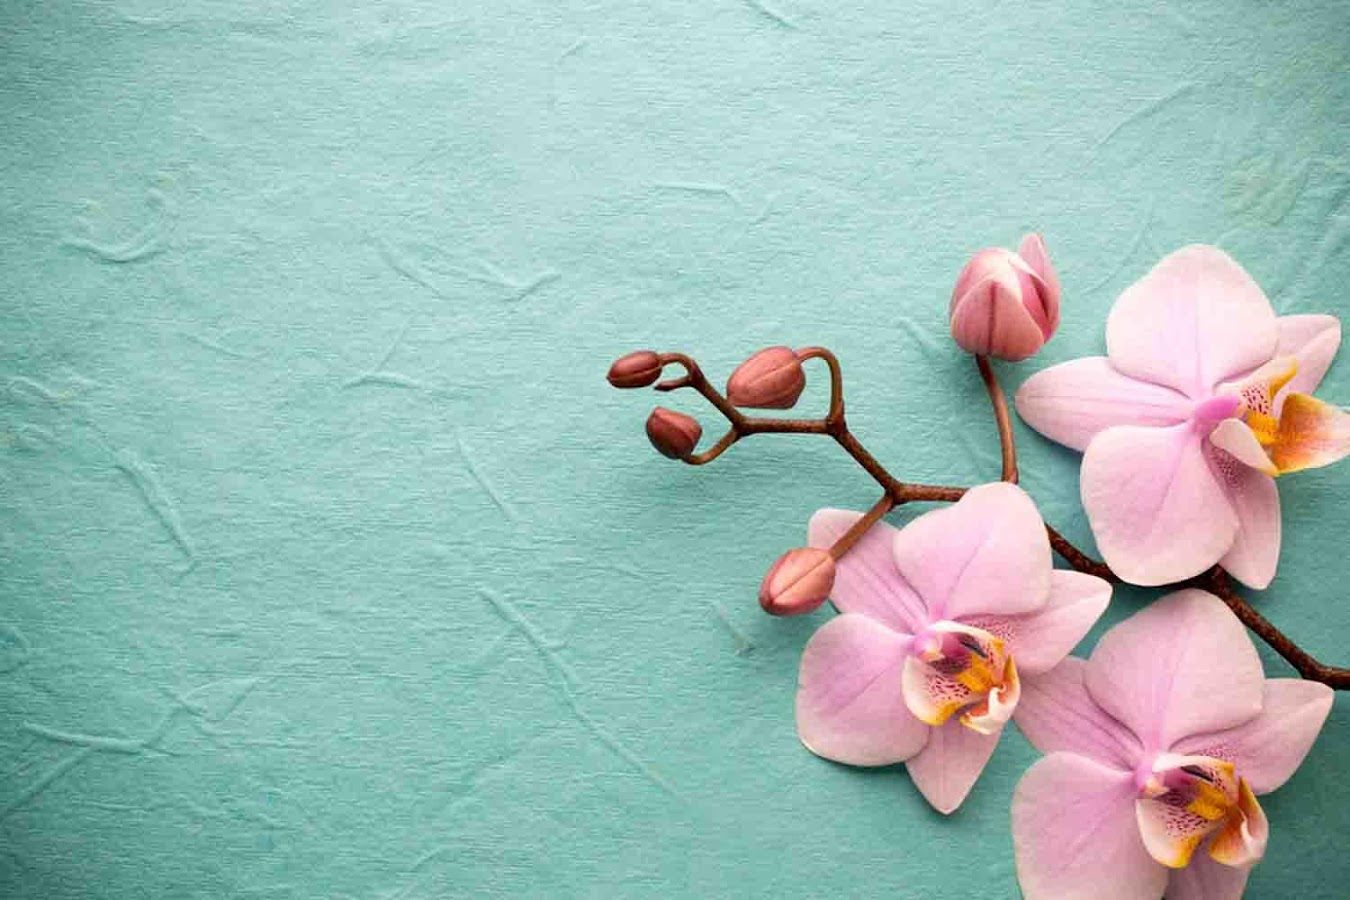 orchid wallpapers backgrounds images - photo #24